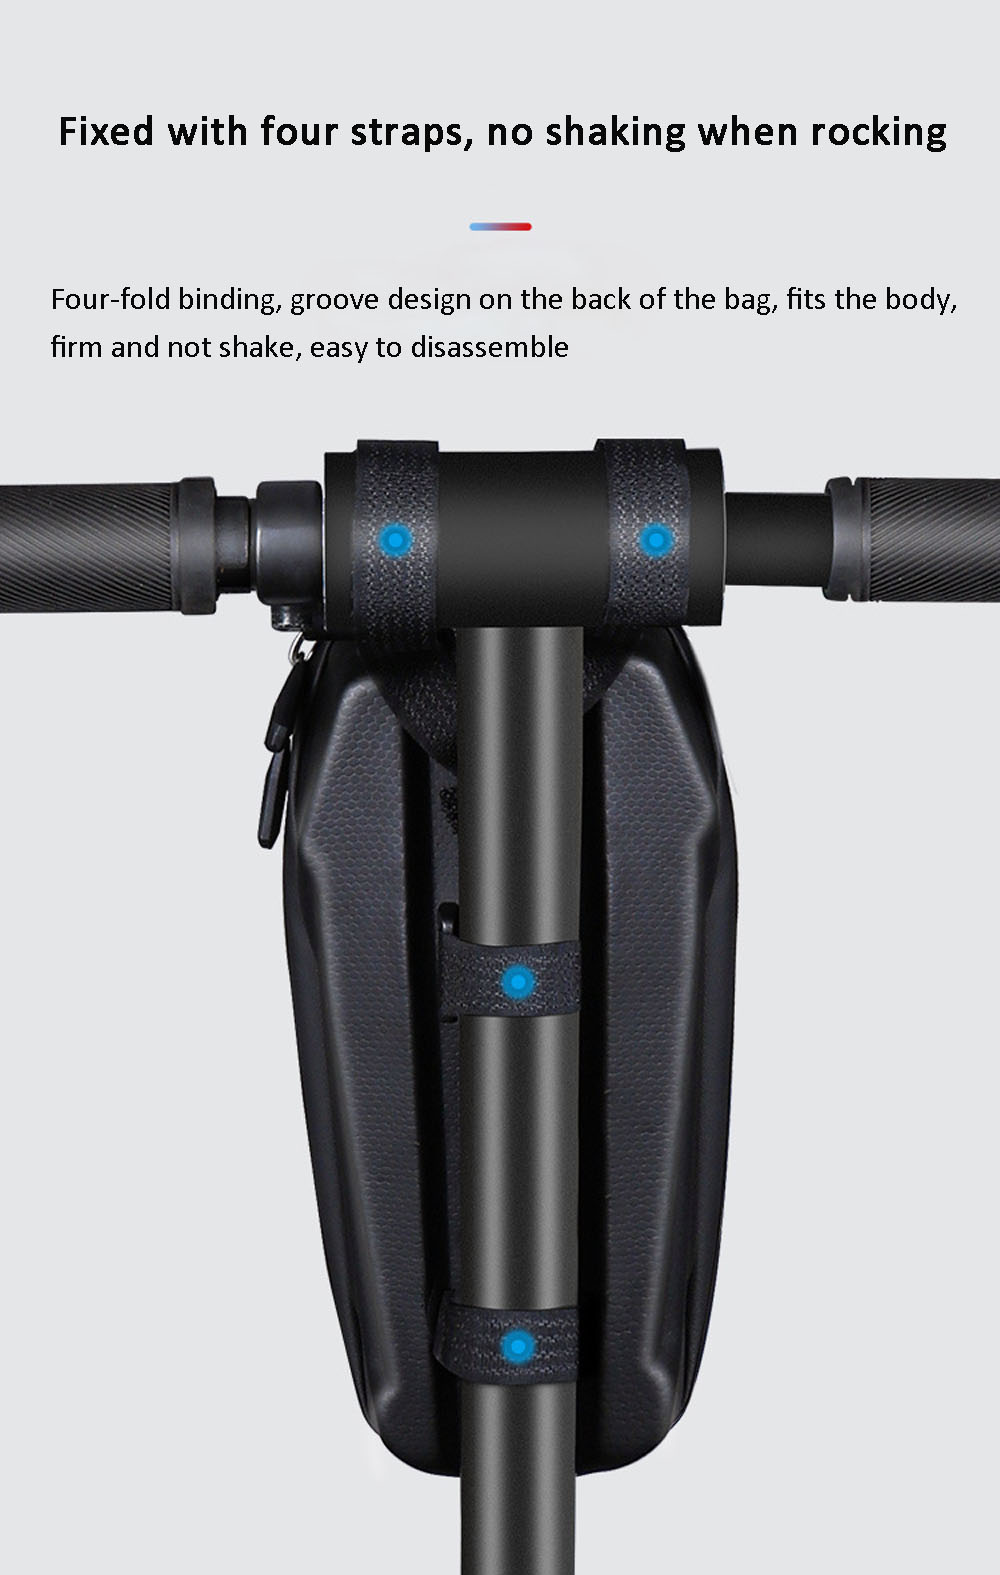 GUB 926 2.6L Bicycle Handlebar Bag EVA Hard Shell Shock Resistance Bike Frame Bag Essential Bicycle Parts for Cycling Electric Scooter Folding Bicycle - Black